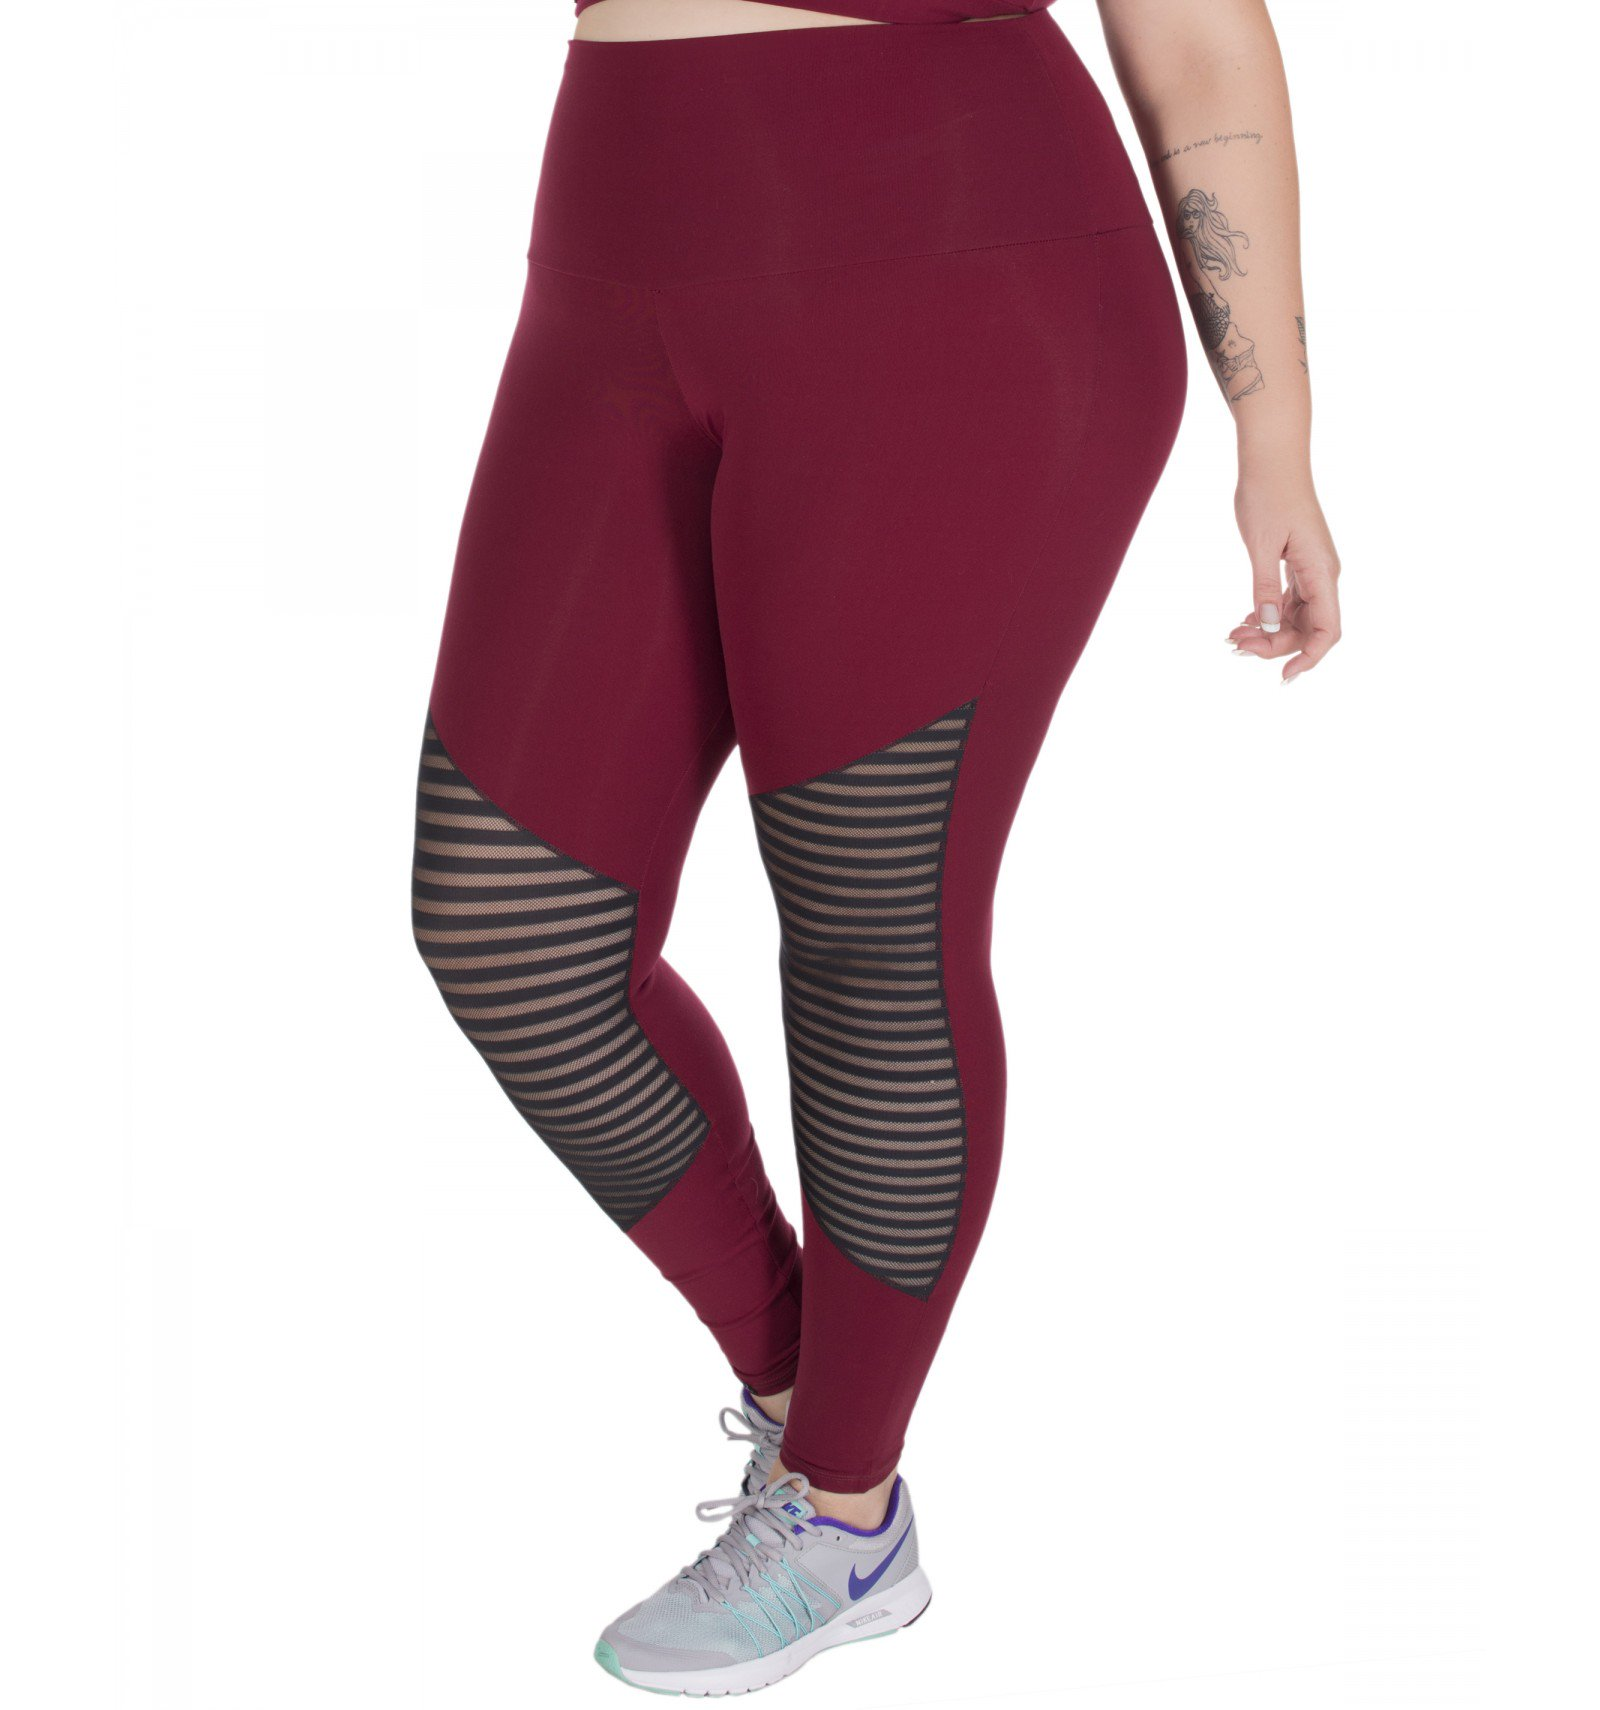 calca-cigarrete-livia-fitness-plus-size-com-transparencia-bordo